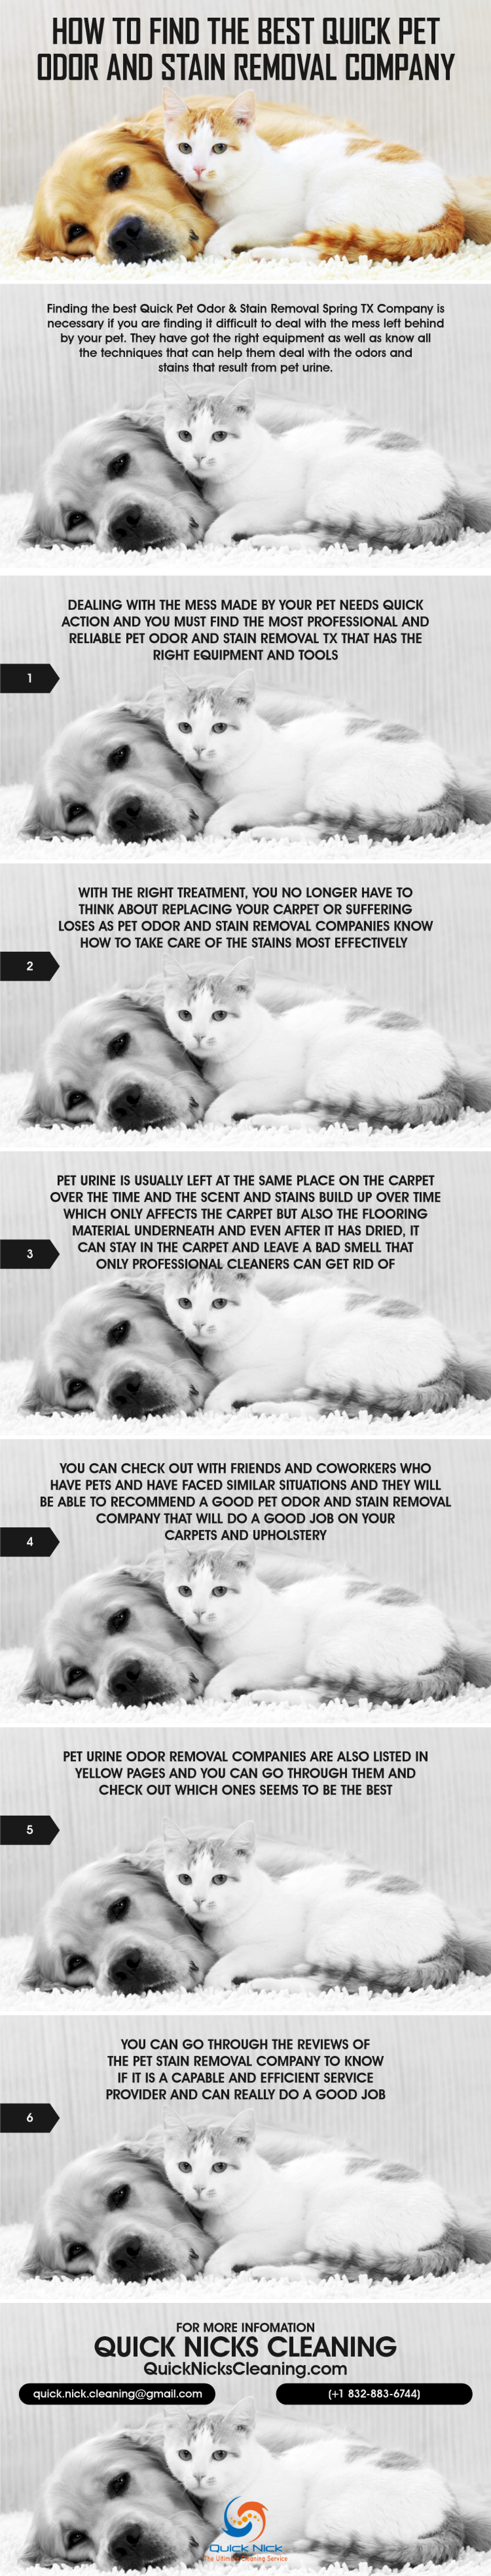 Best Quick Pet Odor and Stain Removal Company Infographic